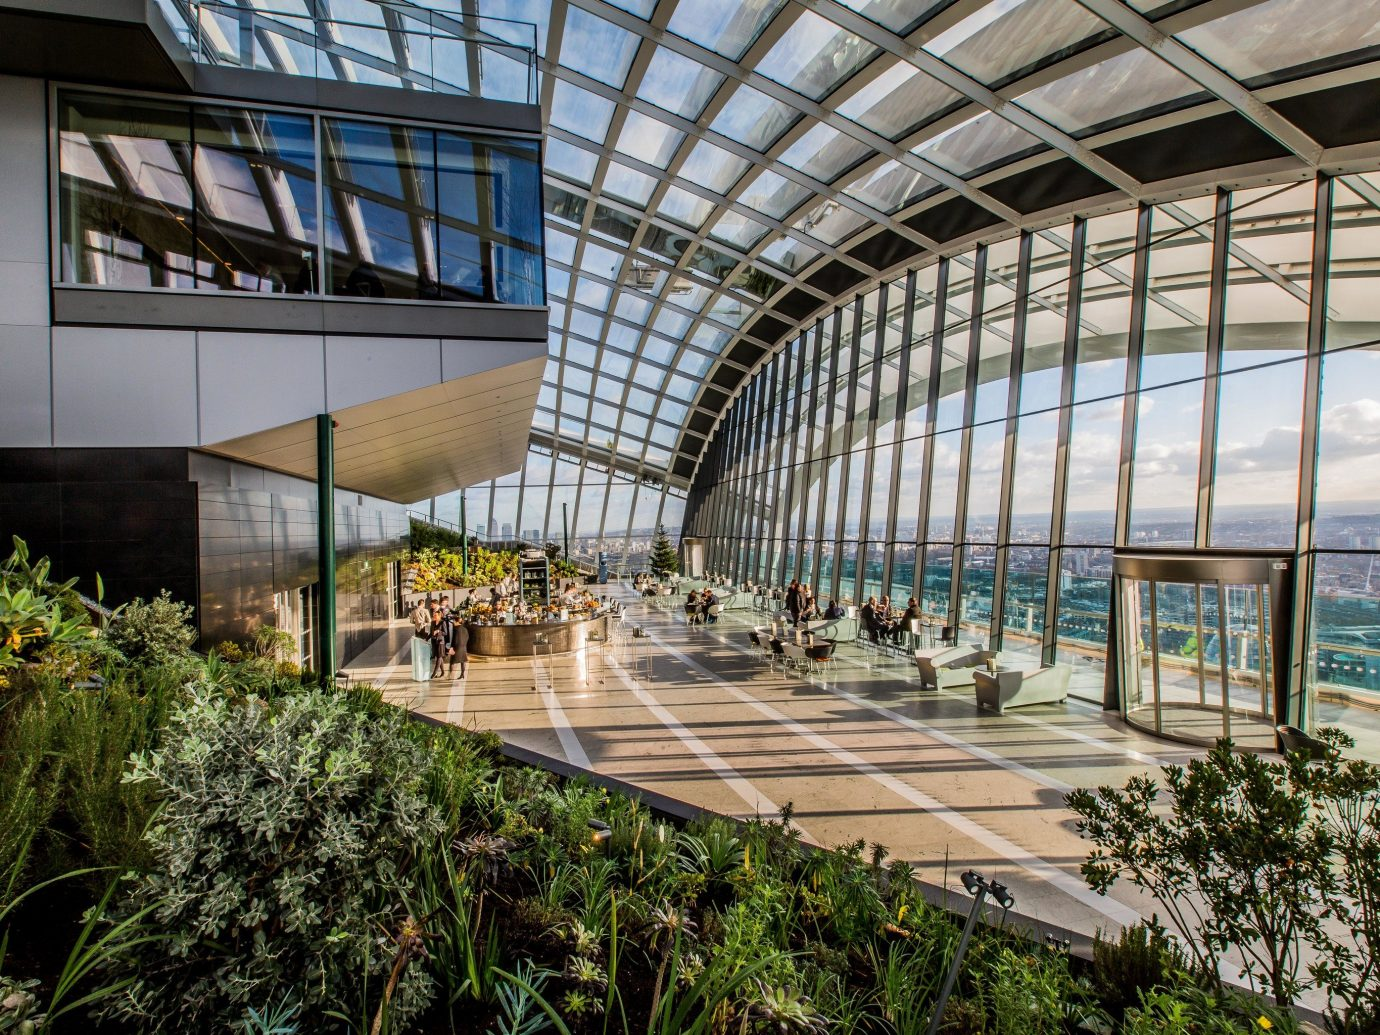 Arts + Culture Trip Ideas building Architecture greenhouse outdoor structure headquarters Courtyard court walkway roof